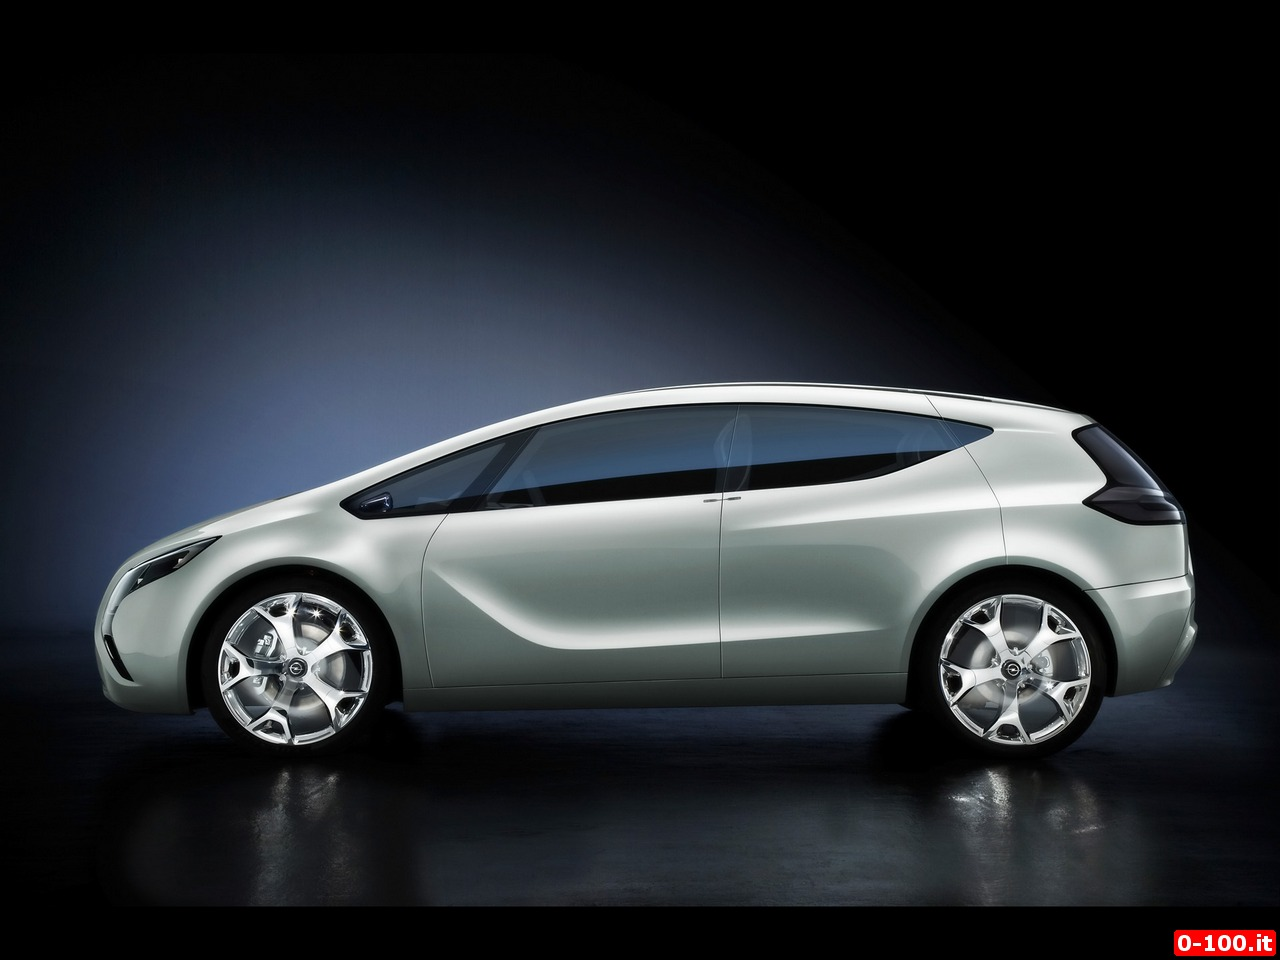 Opel_extreme_concept-0-100_3